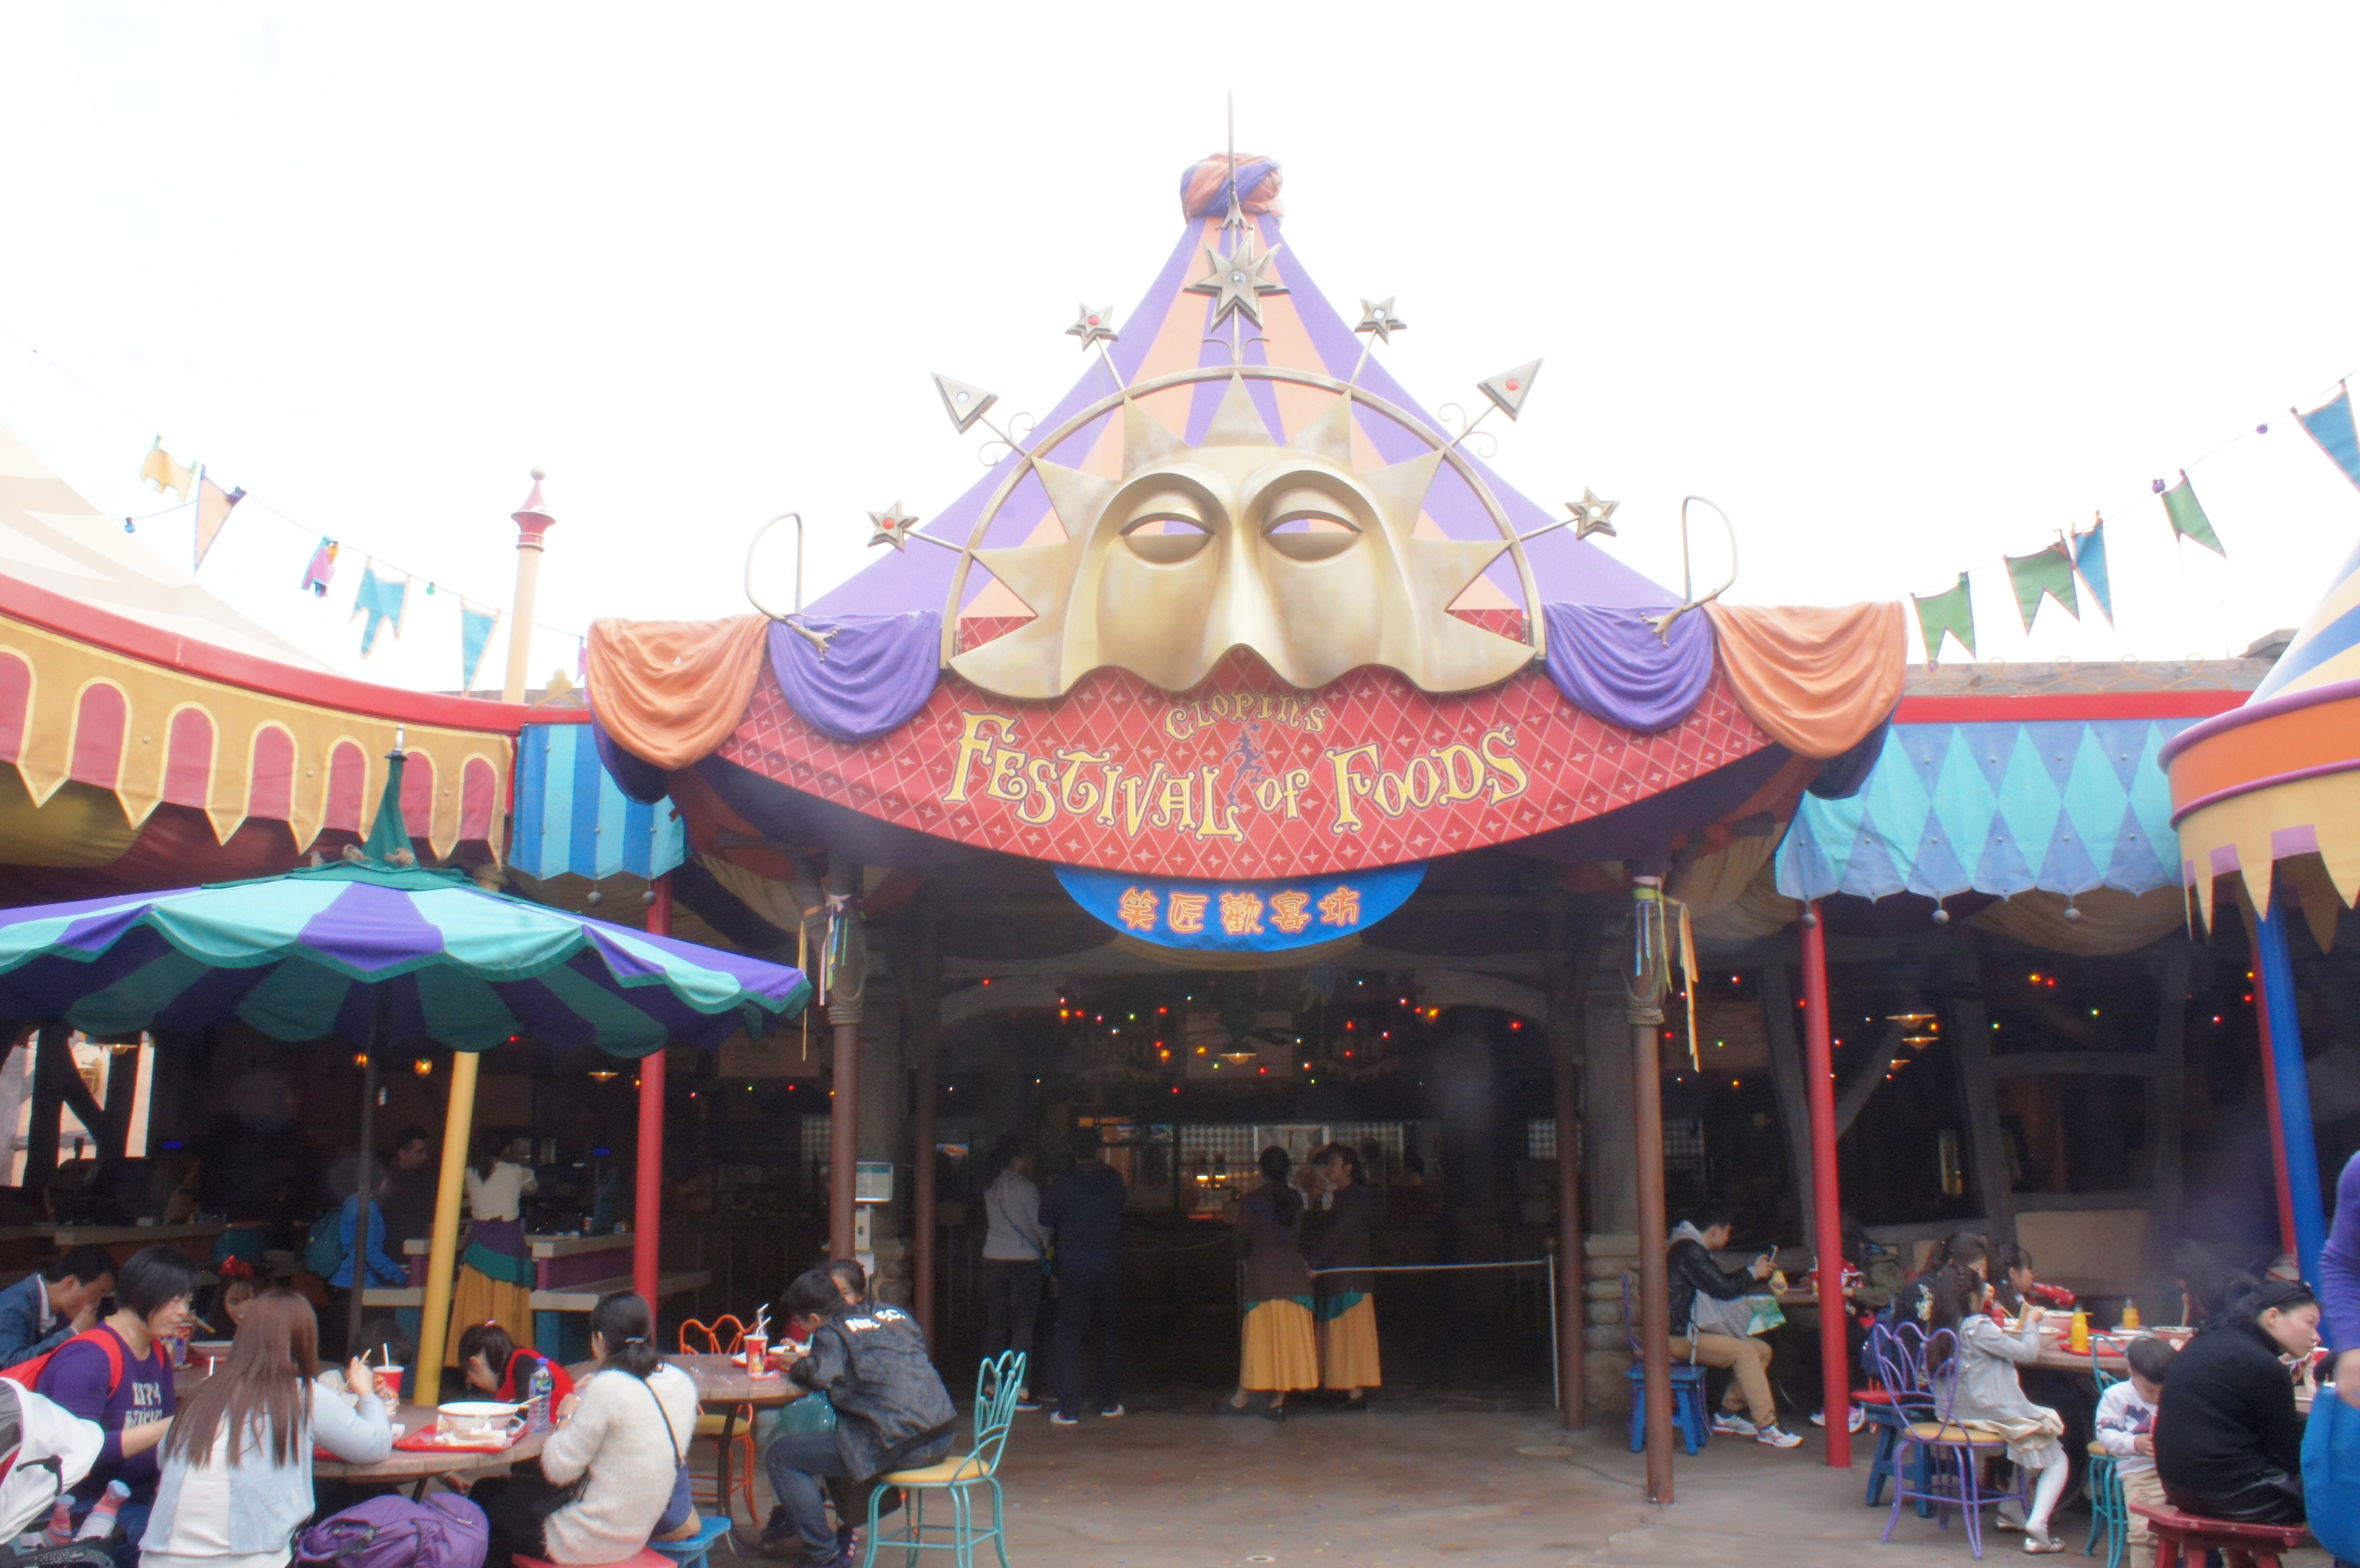 Clopin's Festival of Foods